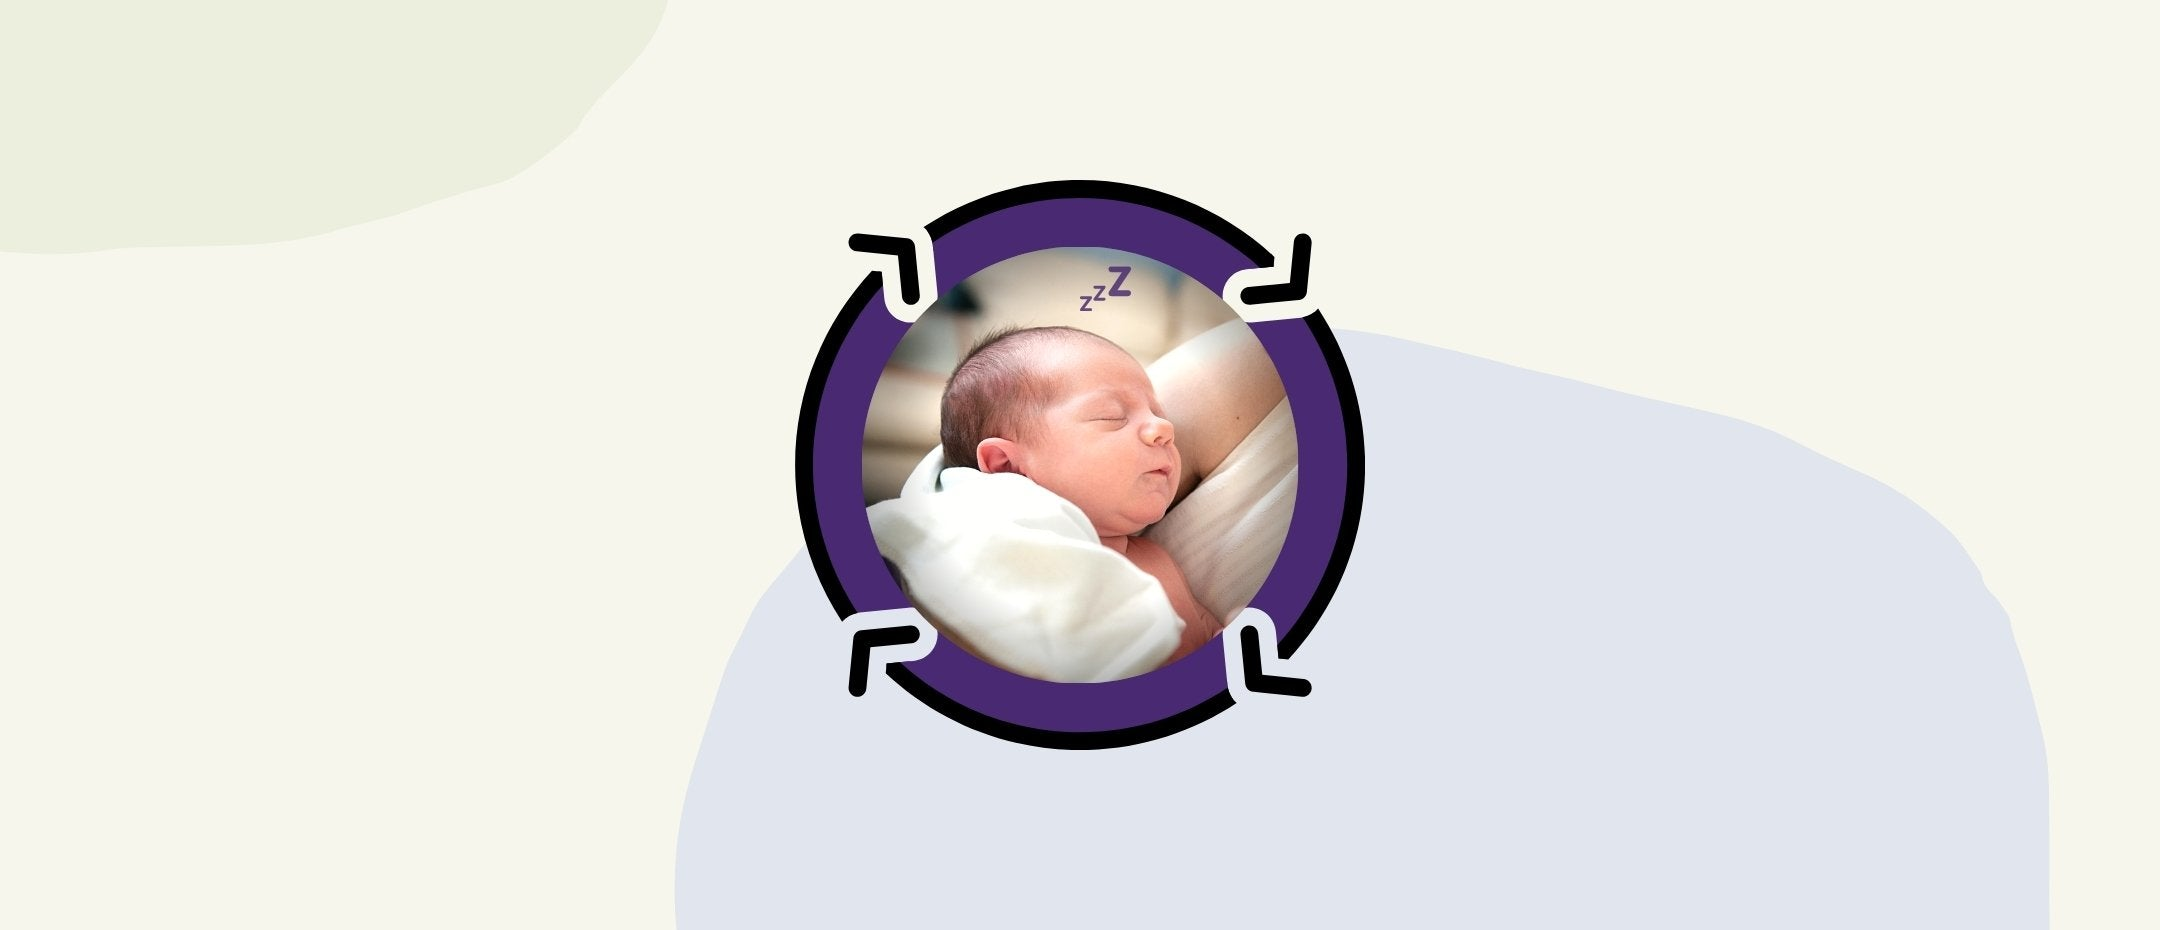 The 8-week-old sleep schedule